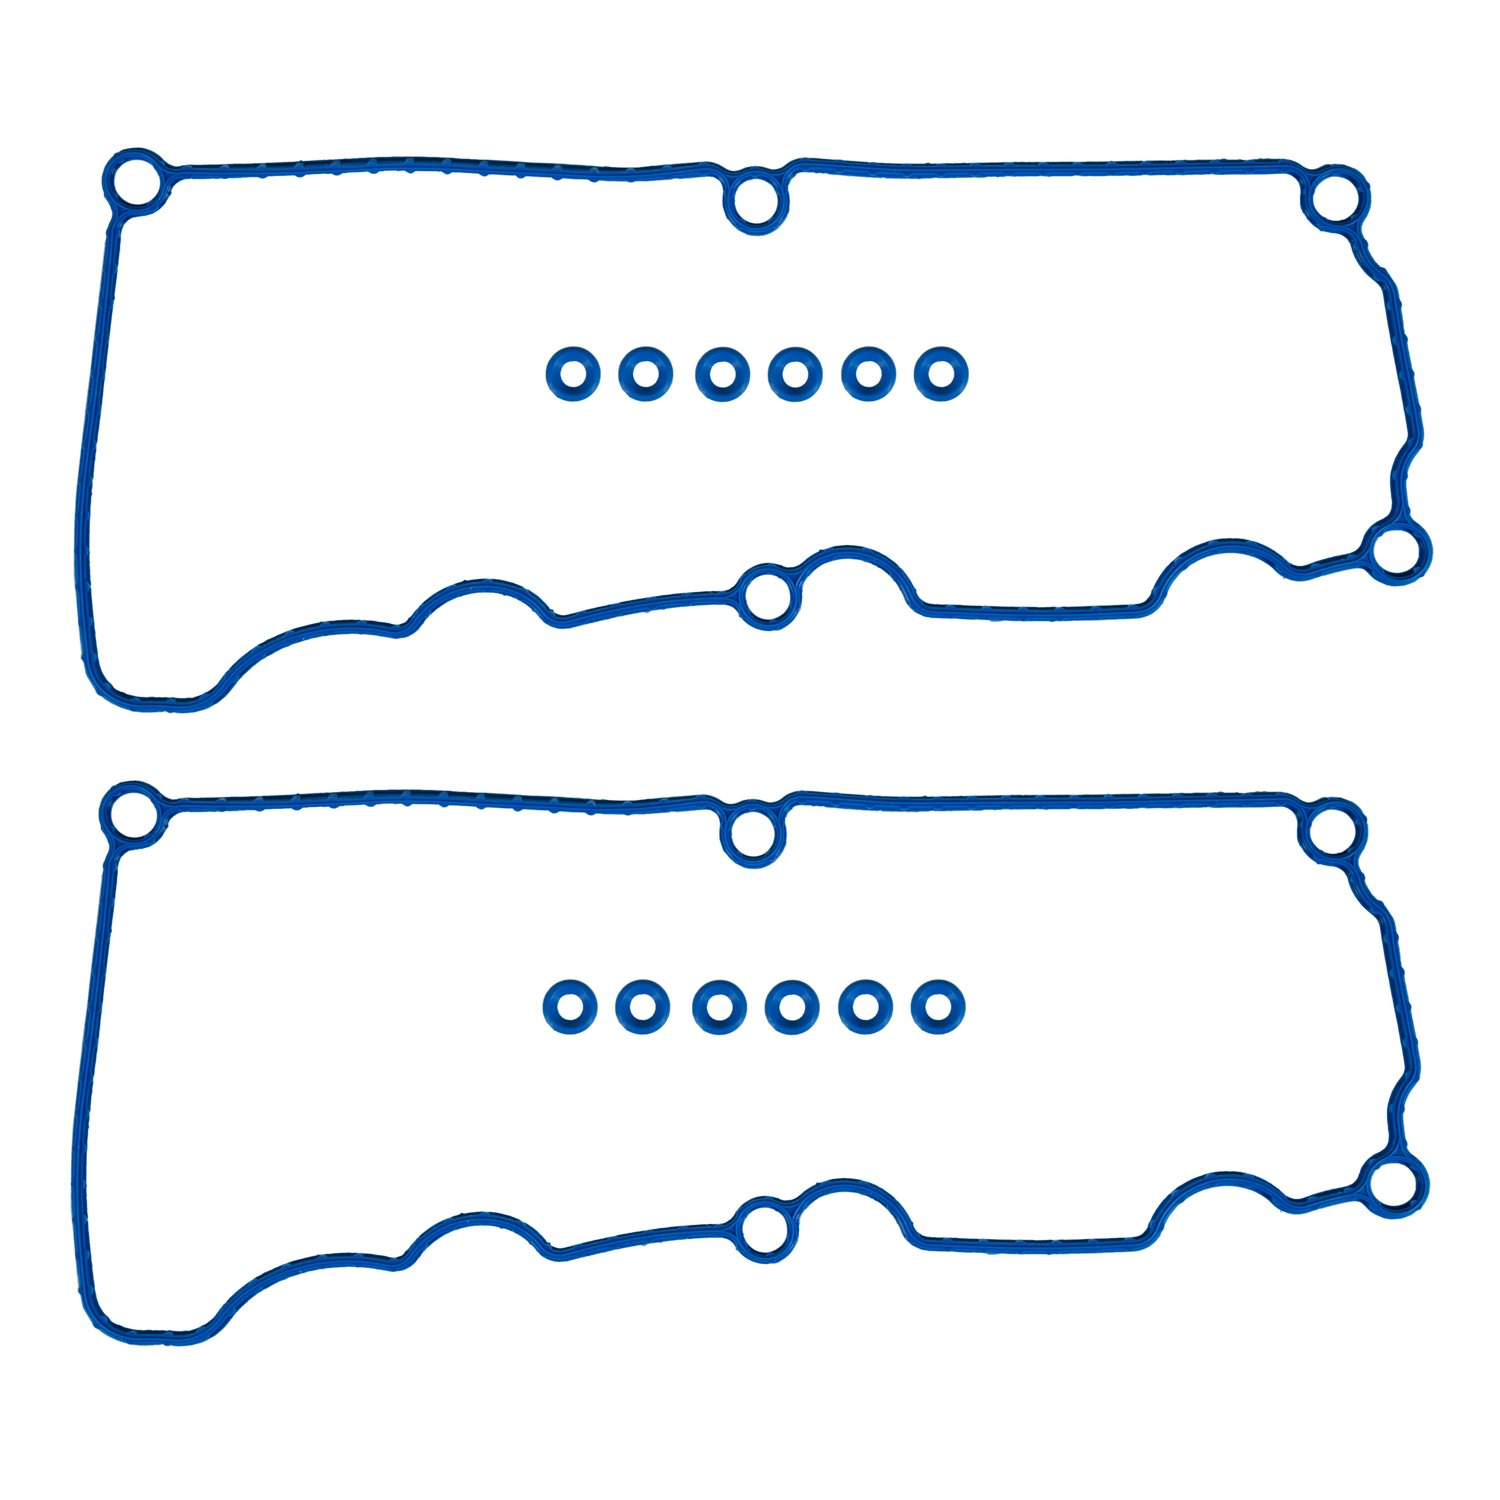 Cheap Valve Cover Set Find Deals On Line At Alibabacom H22a4 Wiring Harness Diagram Get Quotations Felpro Vs 50529 R Gasket